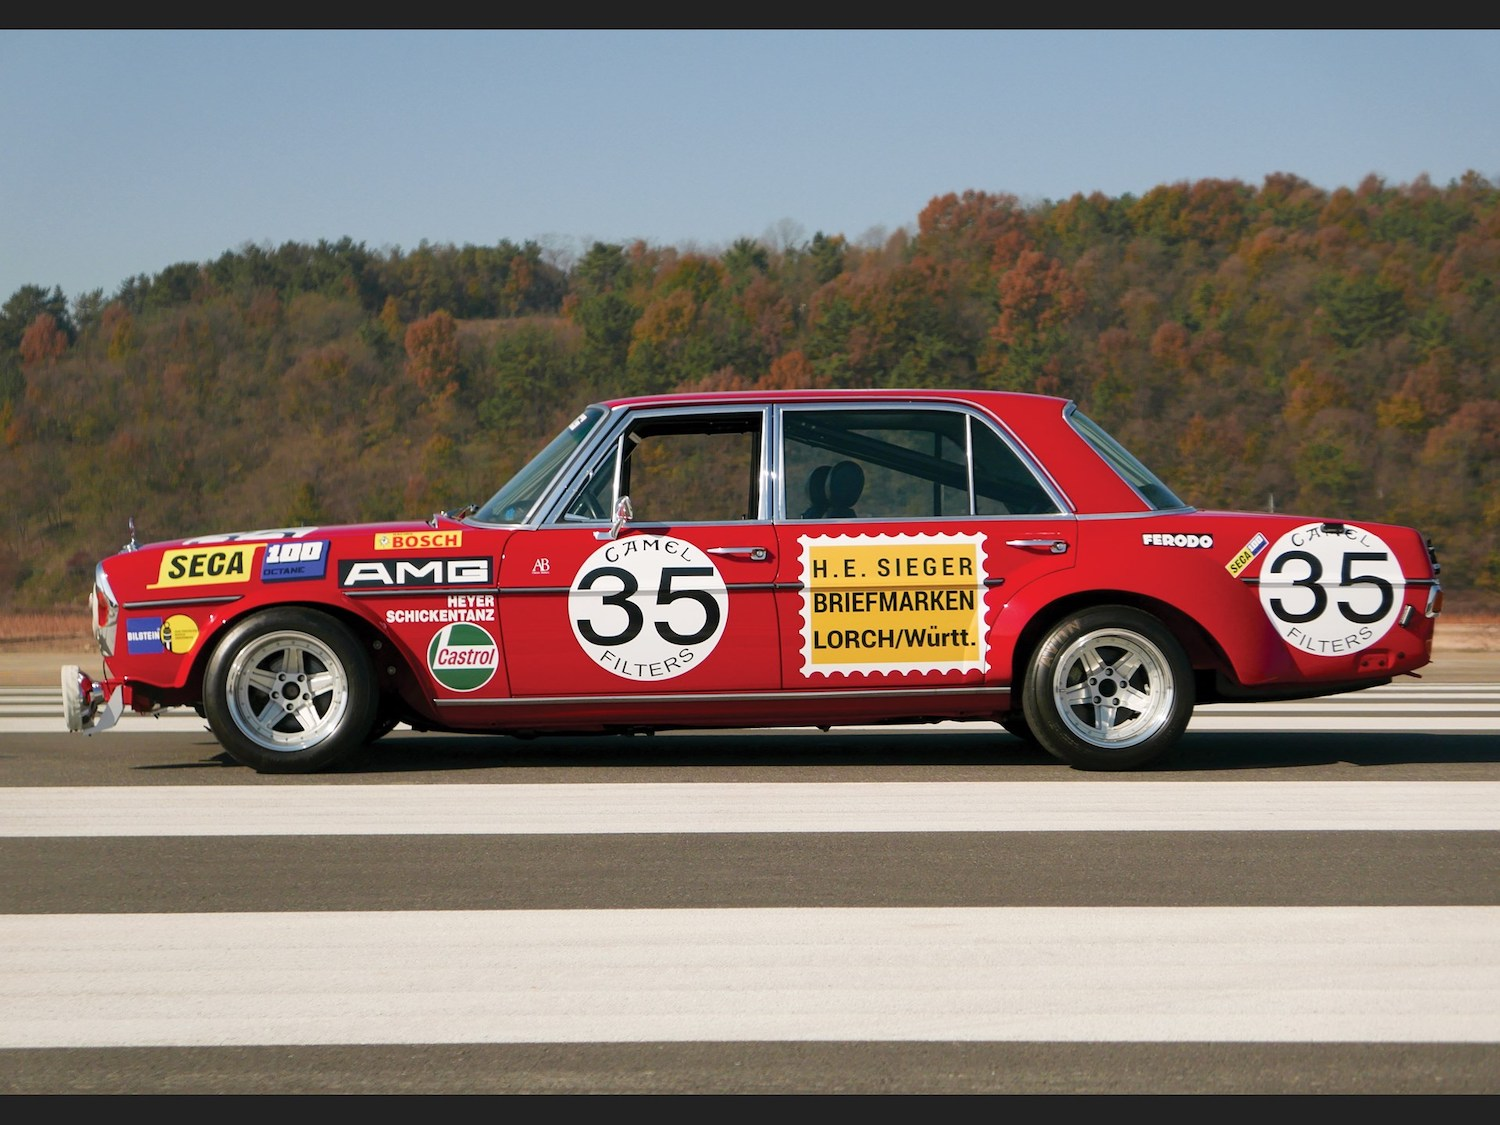 1969 Mercedes-Benz 300 SEL 6.3 'Red Pig' Replica side-view